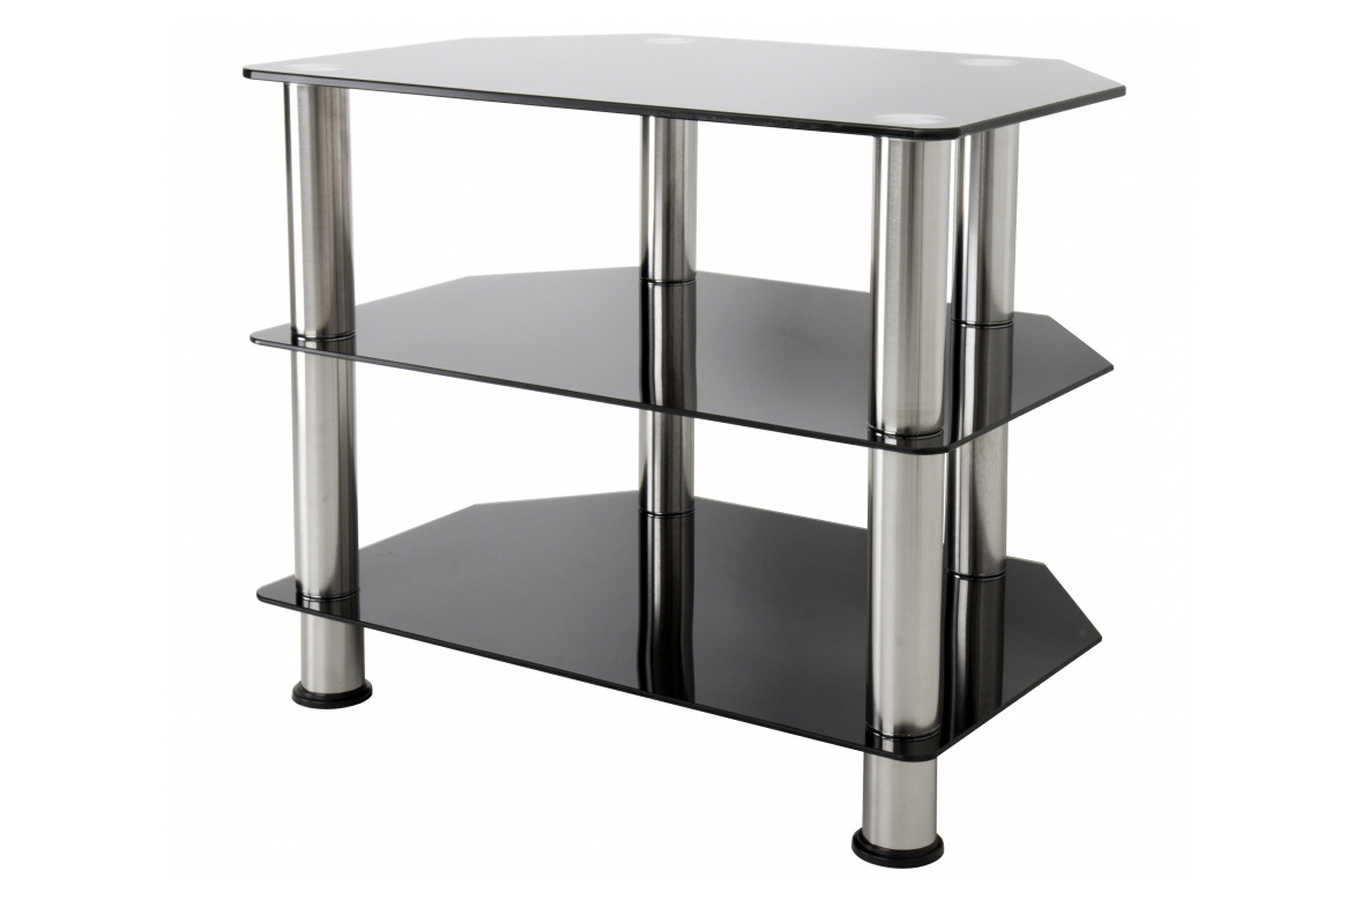 Meuble Tv Jahnke Artzein Com # Table De Tele En Verre